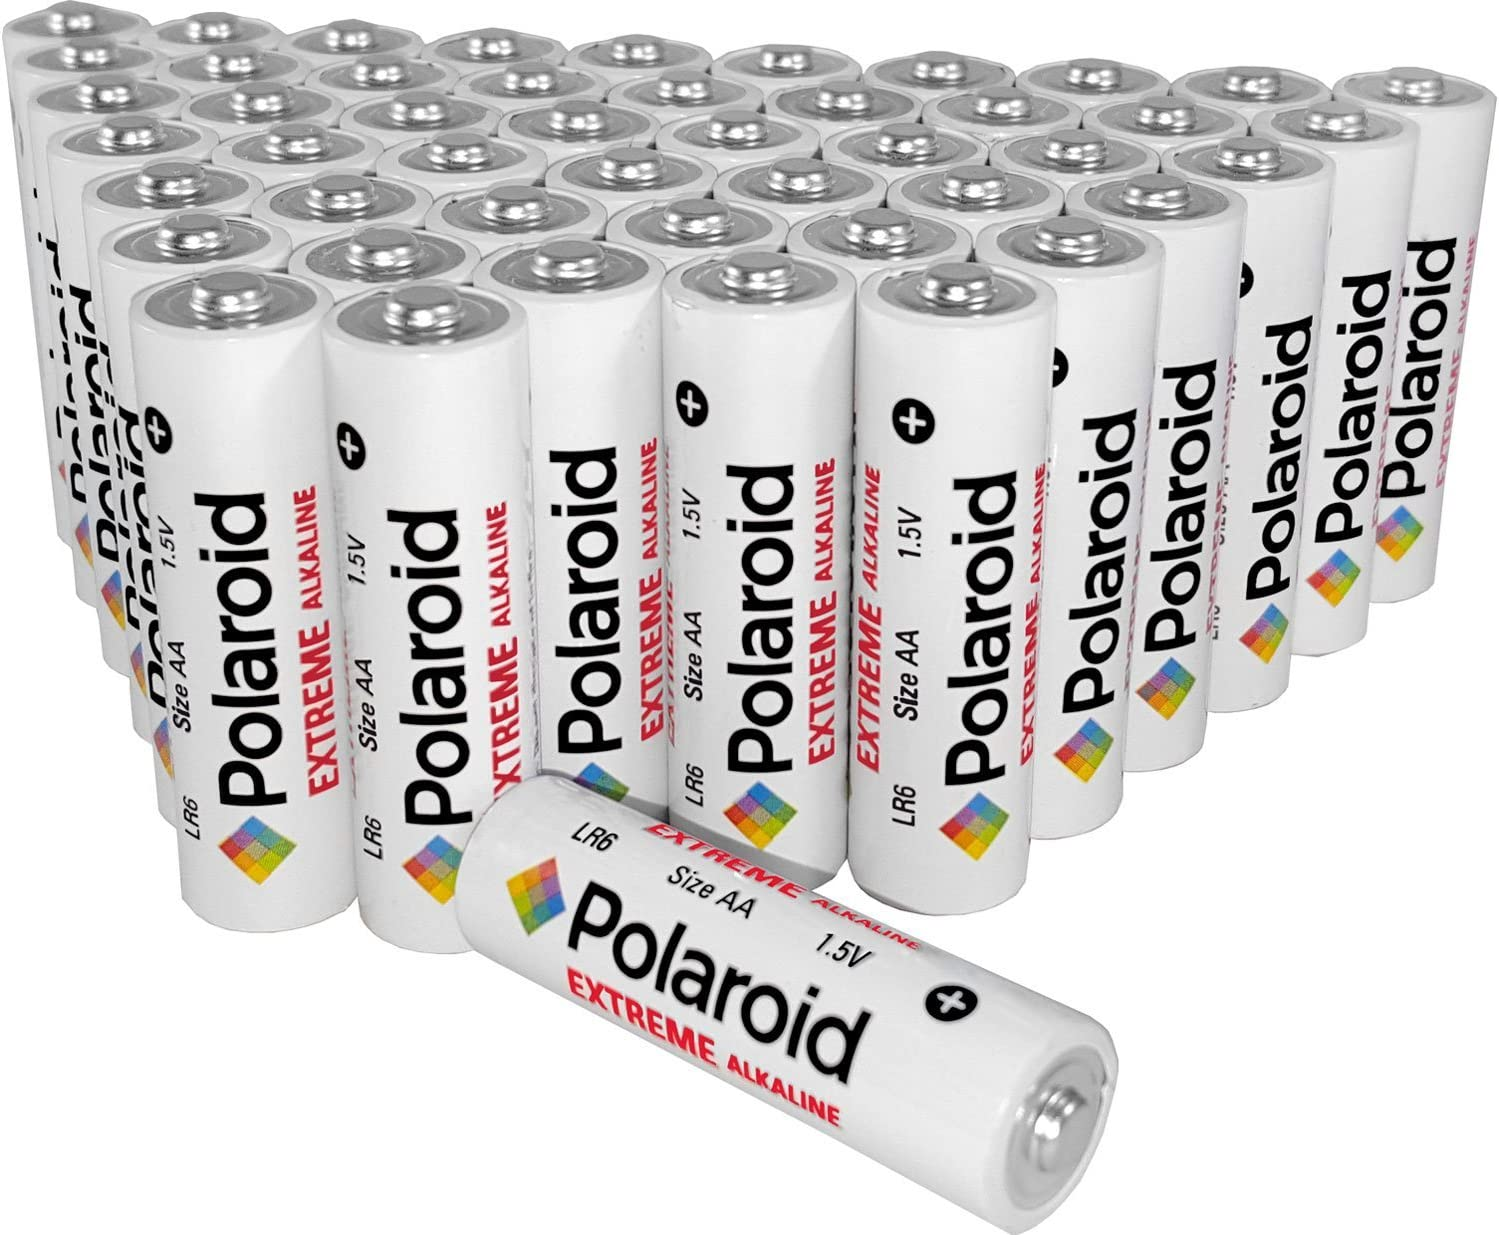 Polaroid Extreme AA Alkaline Batteries Wholesale Bulk Bundle Pack (48-Pack) Non Rechargeable